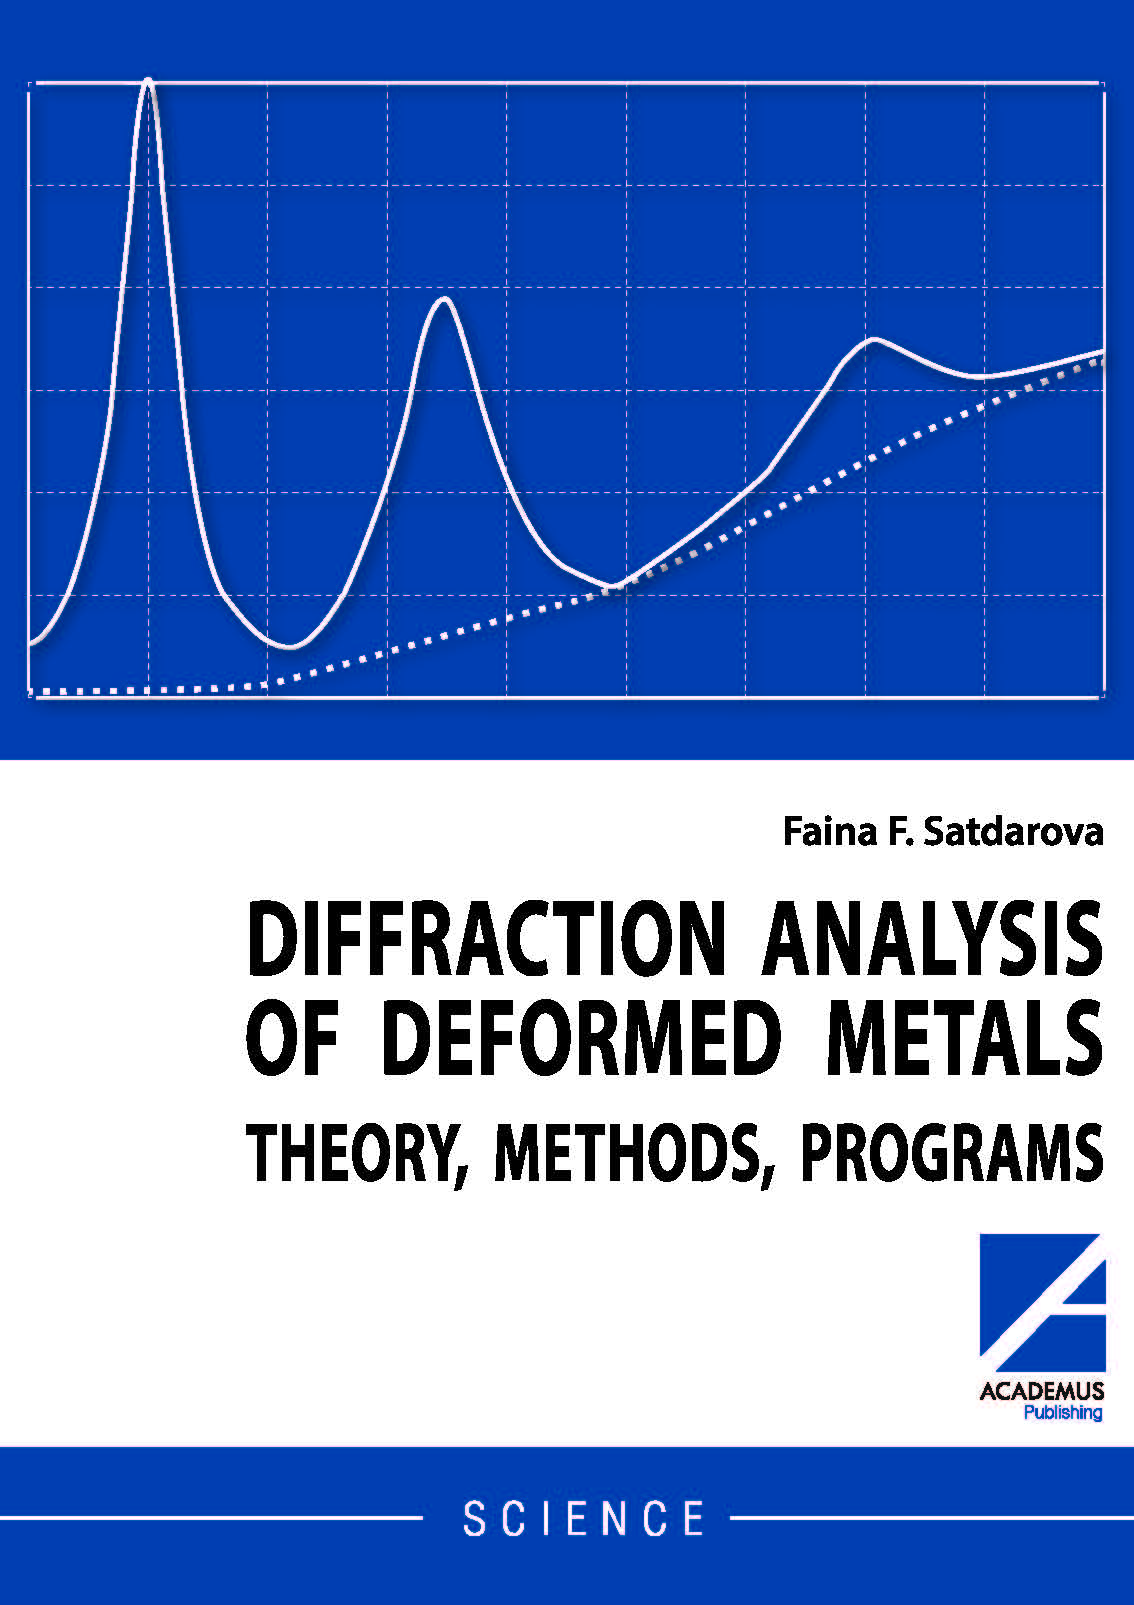 DIFFRACTION ANALYSIS OF DEFORMED METALS: Theory, Methods, Programs